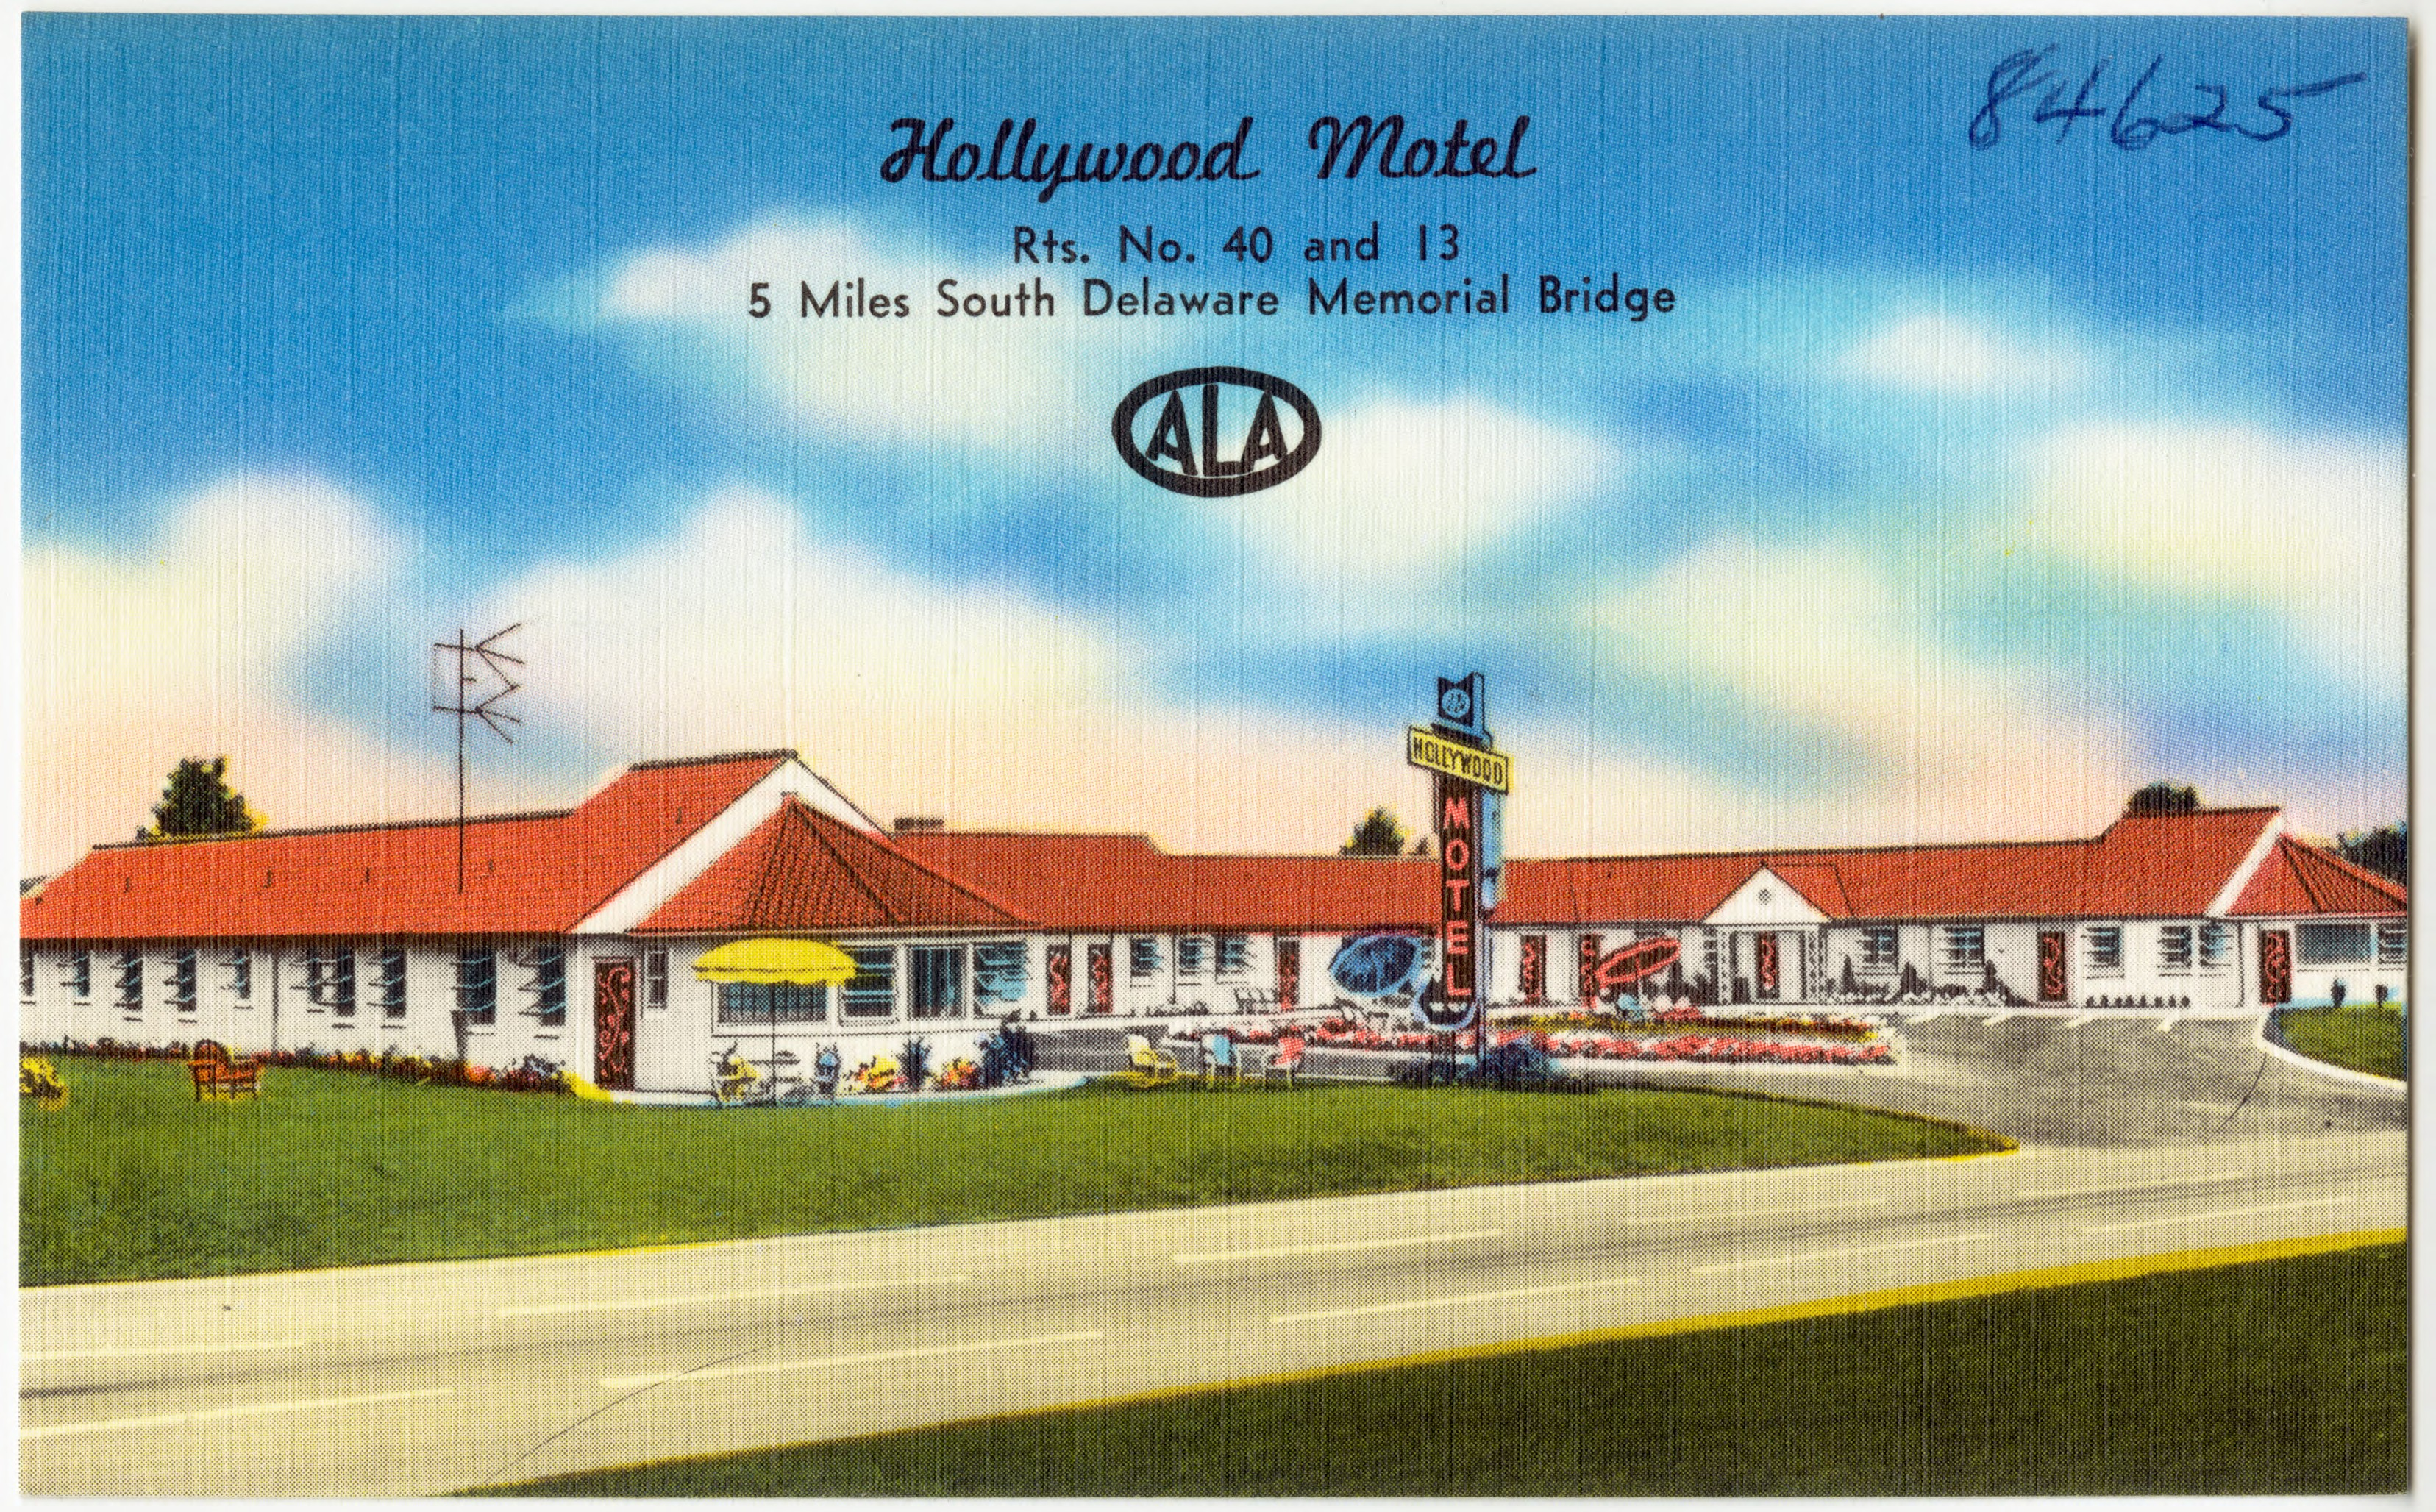 Hollywood Motel File Hollywood Motel Rts No 40 And 13 5 Miles South Delaware